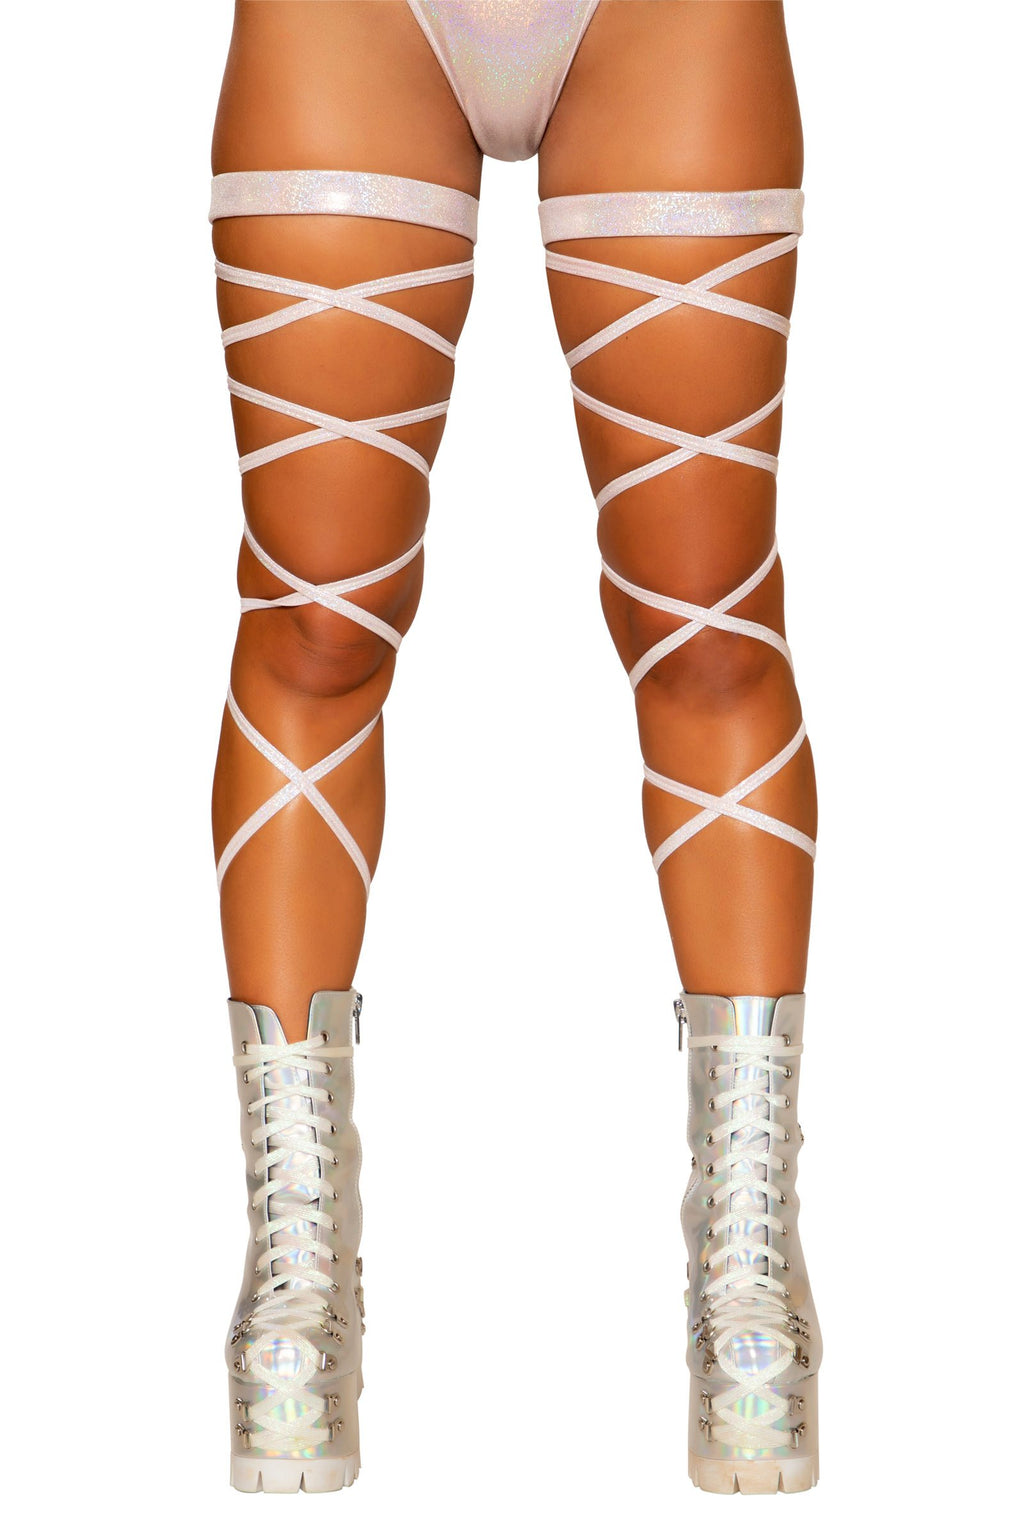 "3671 - 100"" Shimmer Leg Strap with Attached Garter"